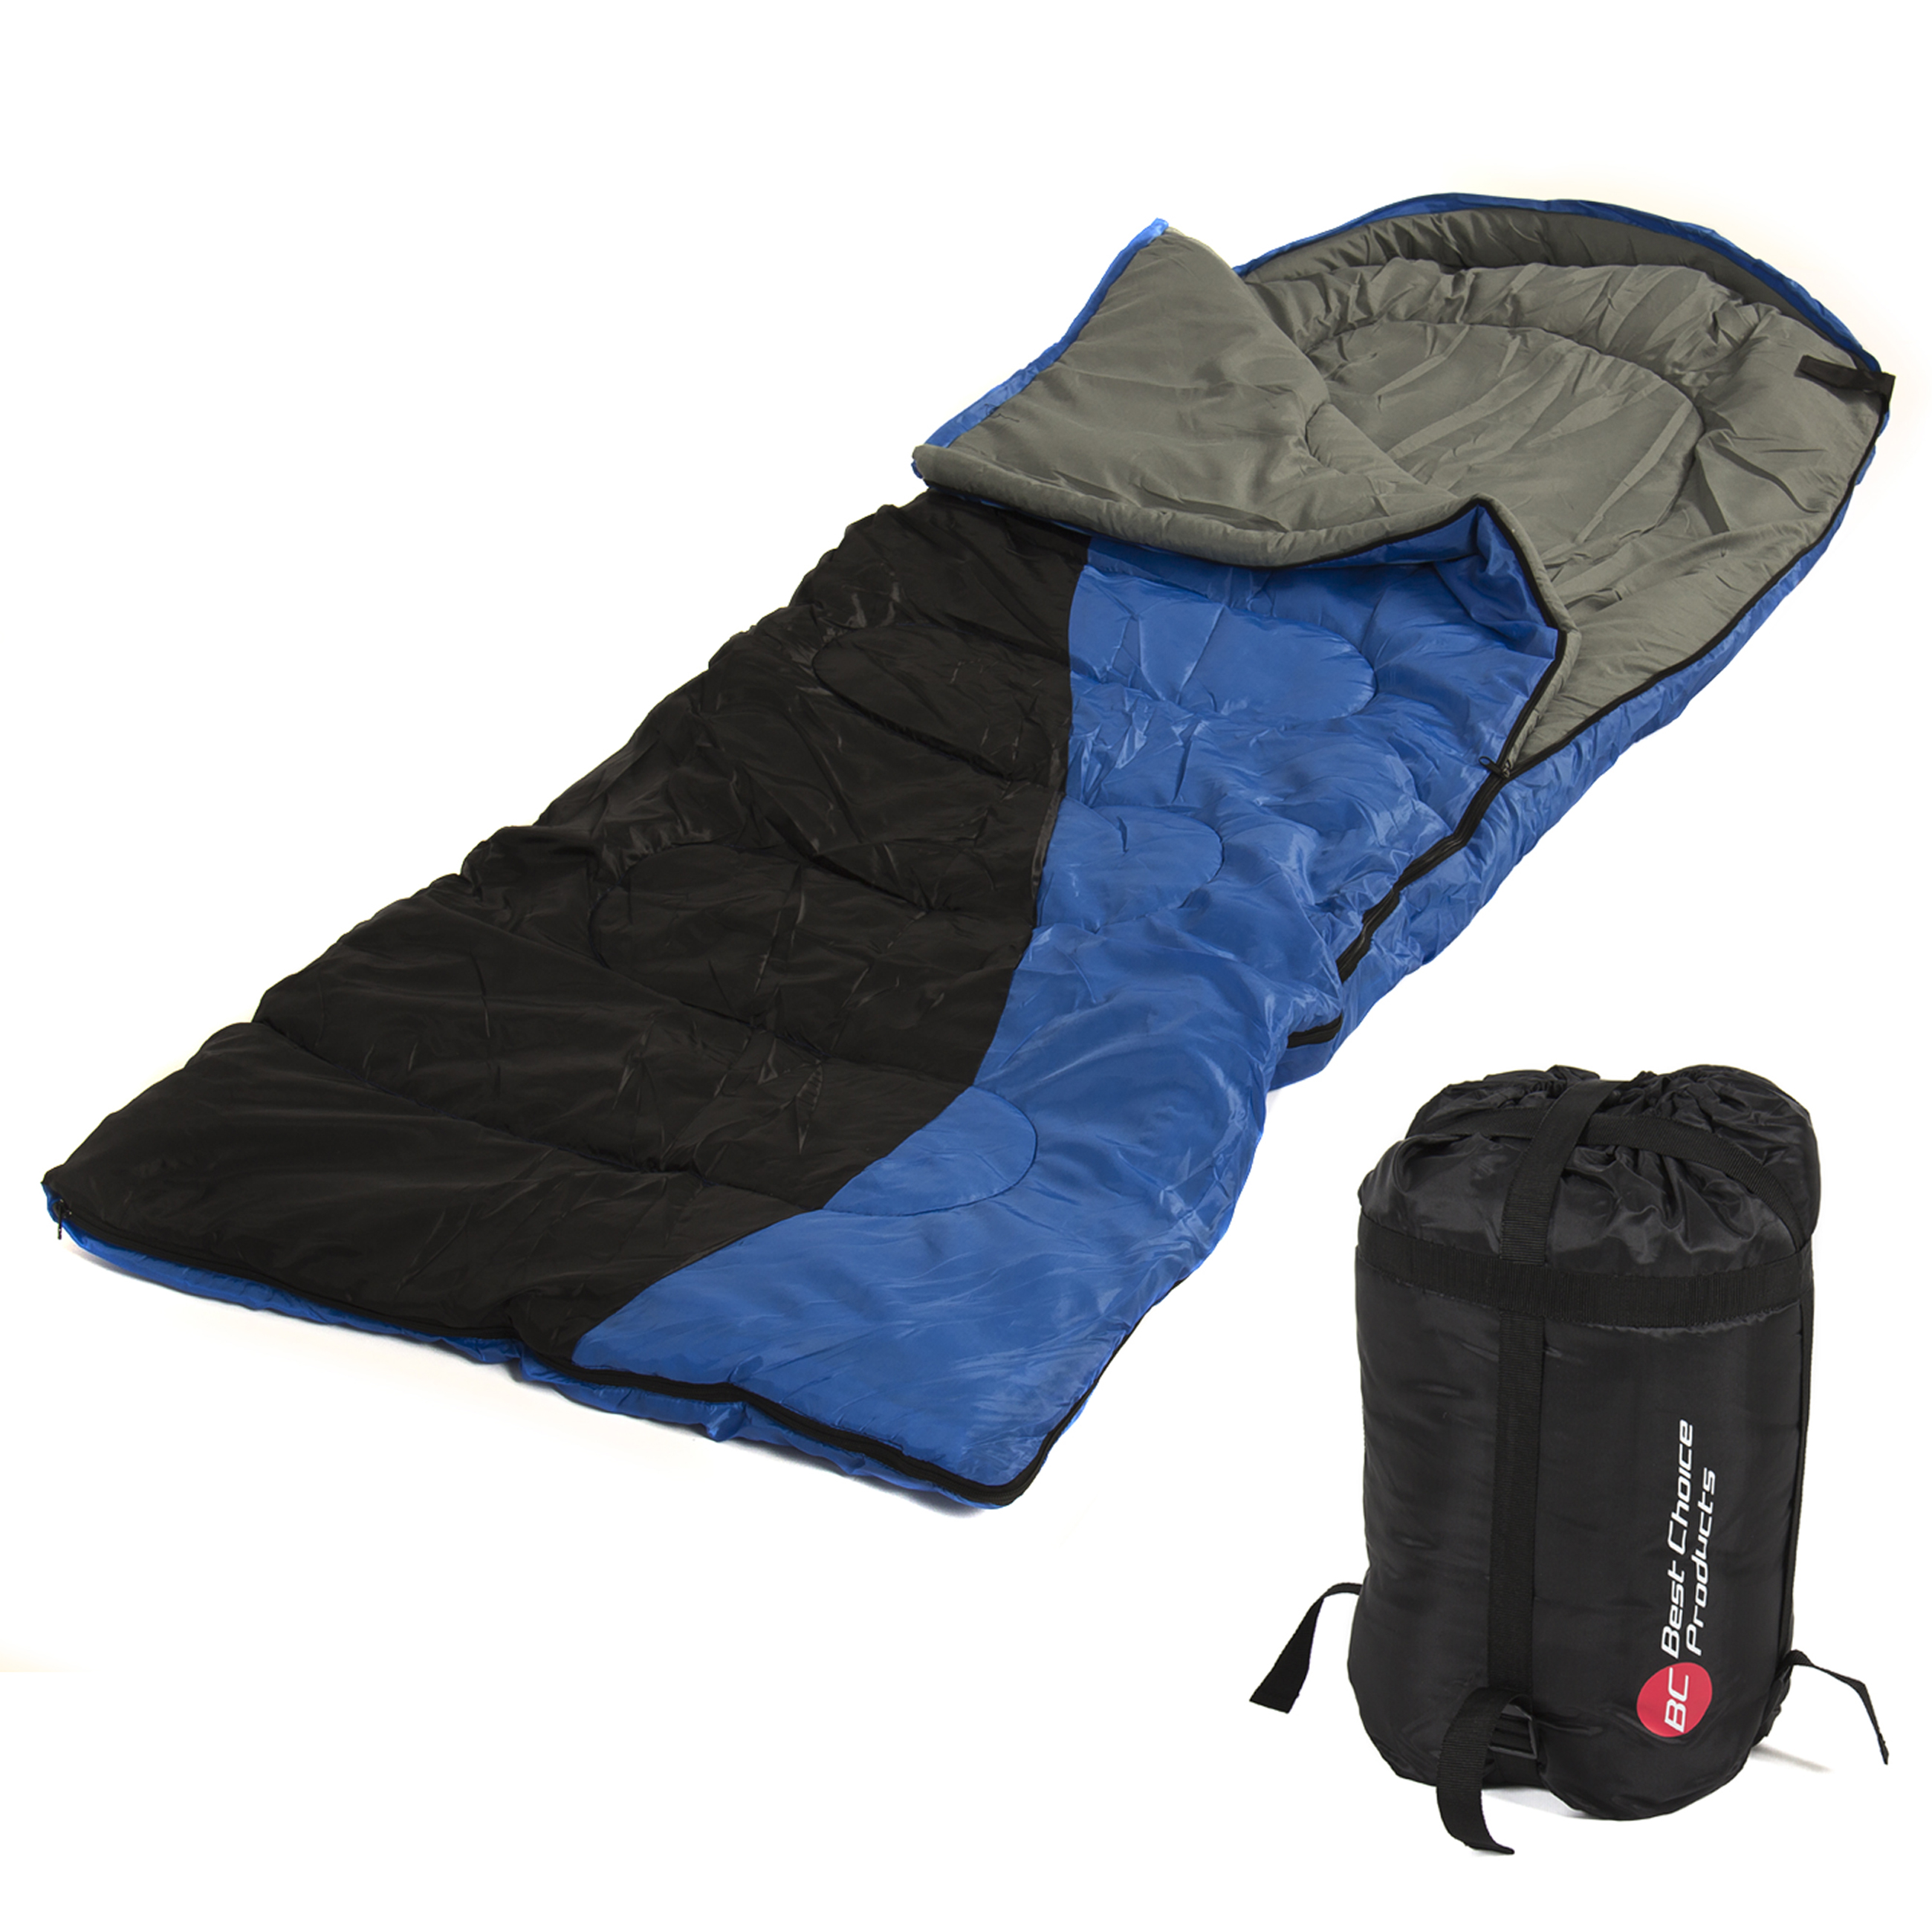 "Single Sleeping Bag 23F -5C 2 Camping Hiking 84""x 55"" W Carrying Case New by"